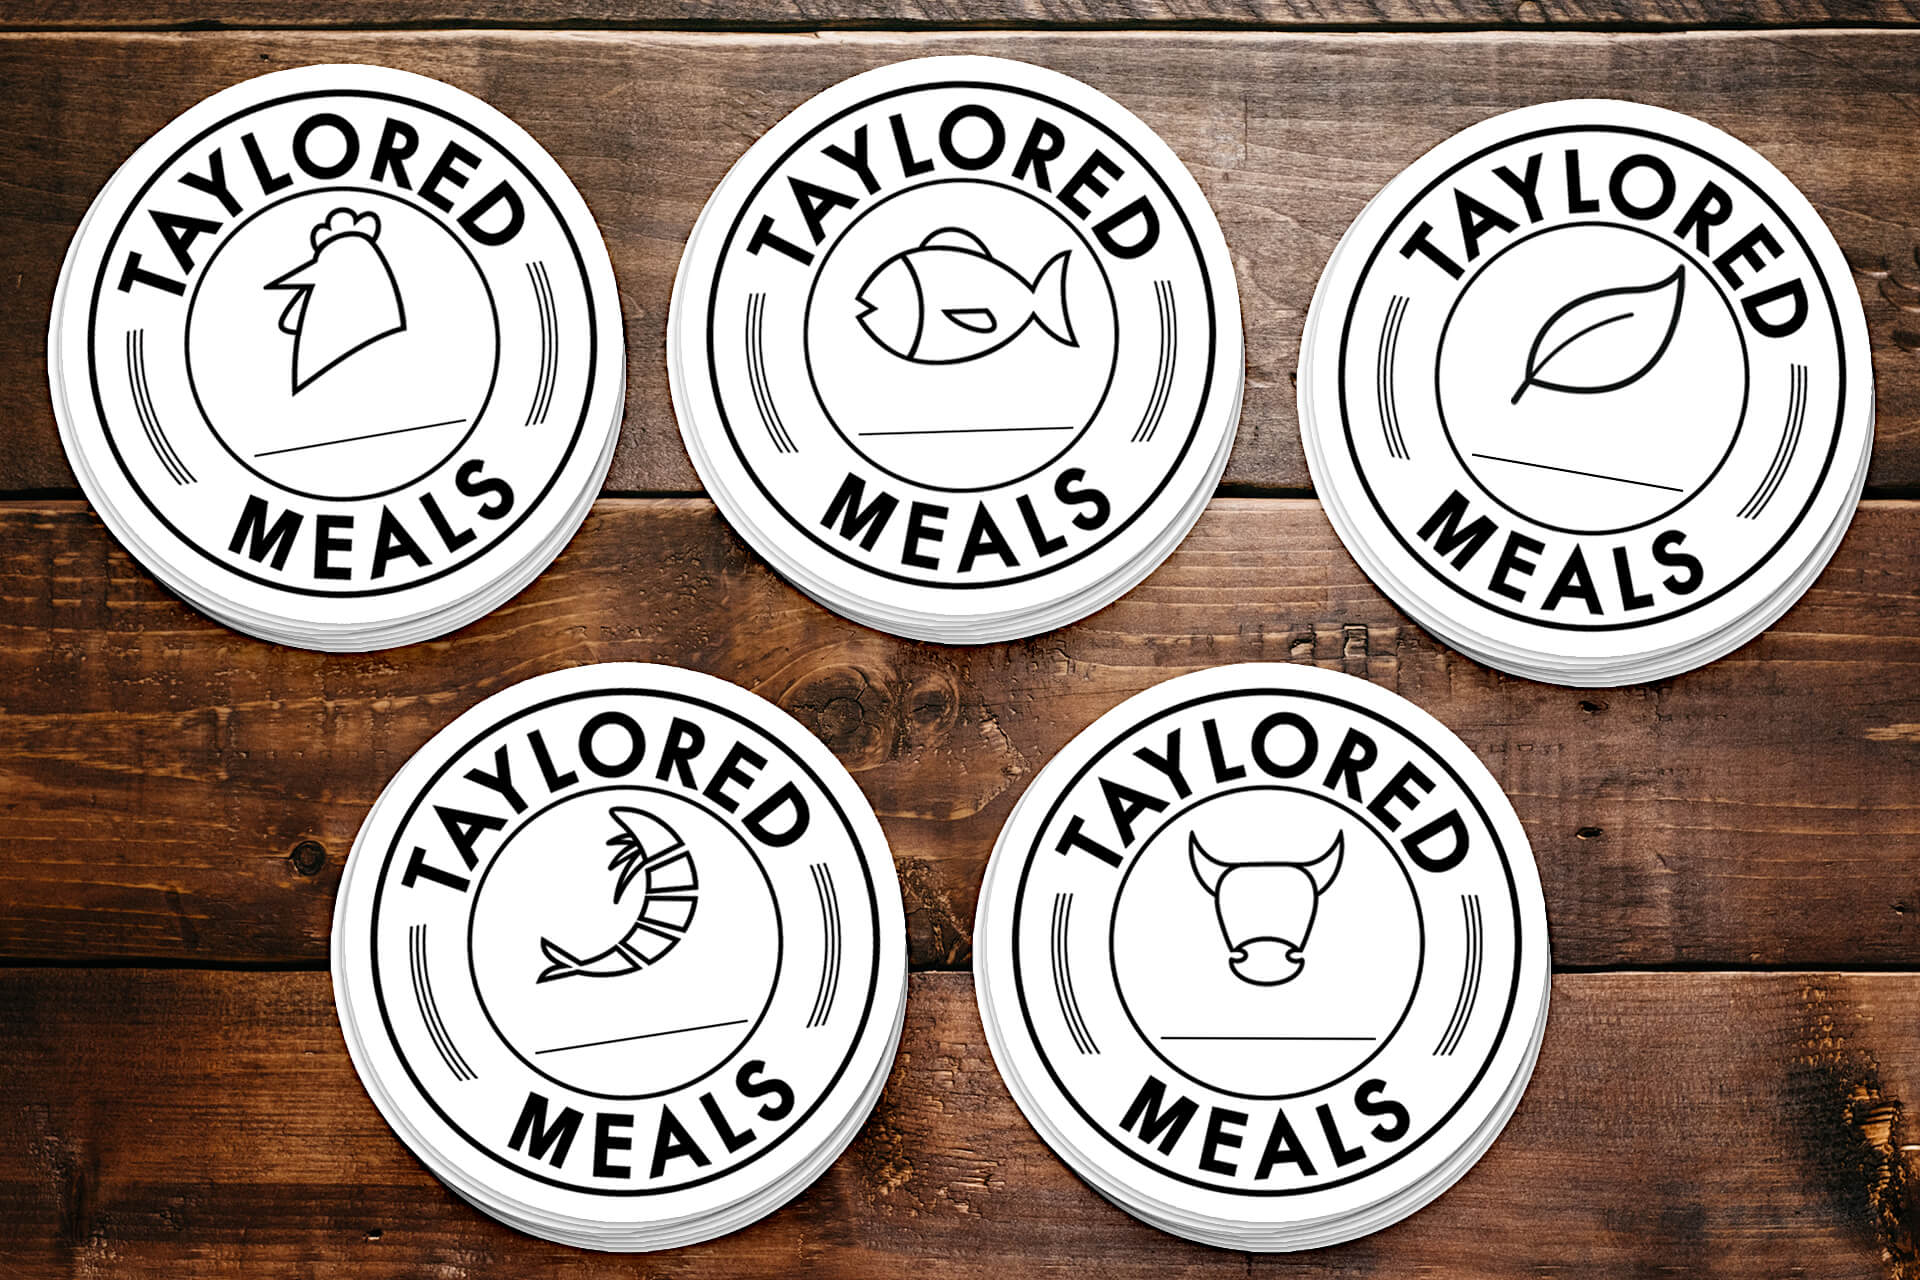 Taylored Meals — Stickers